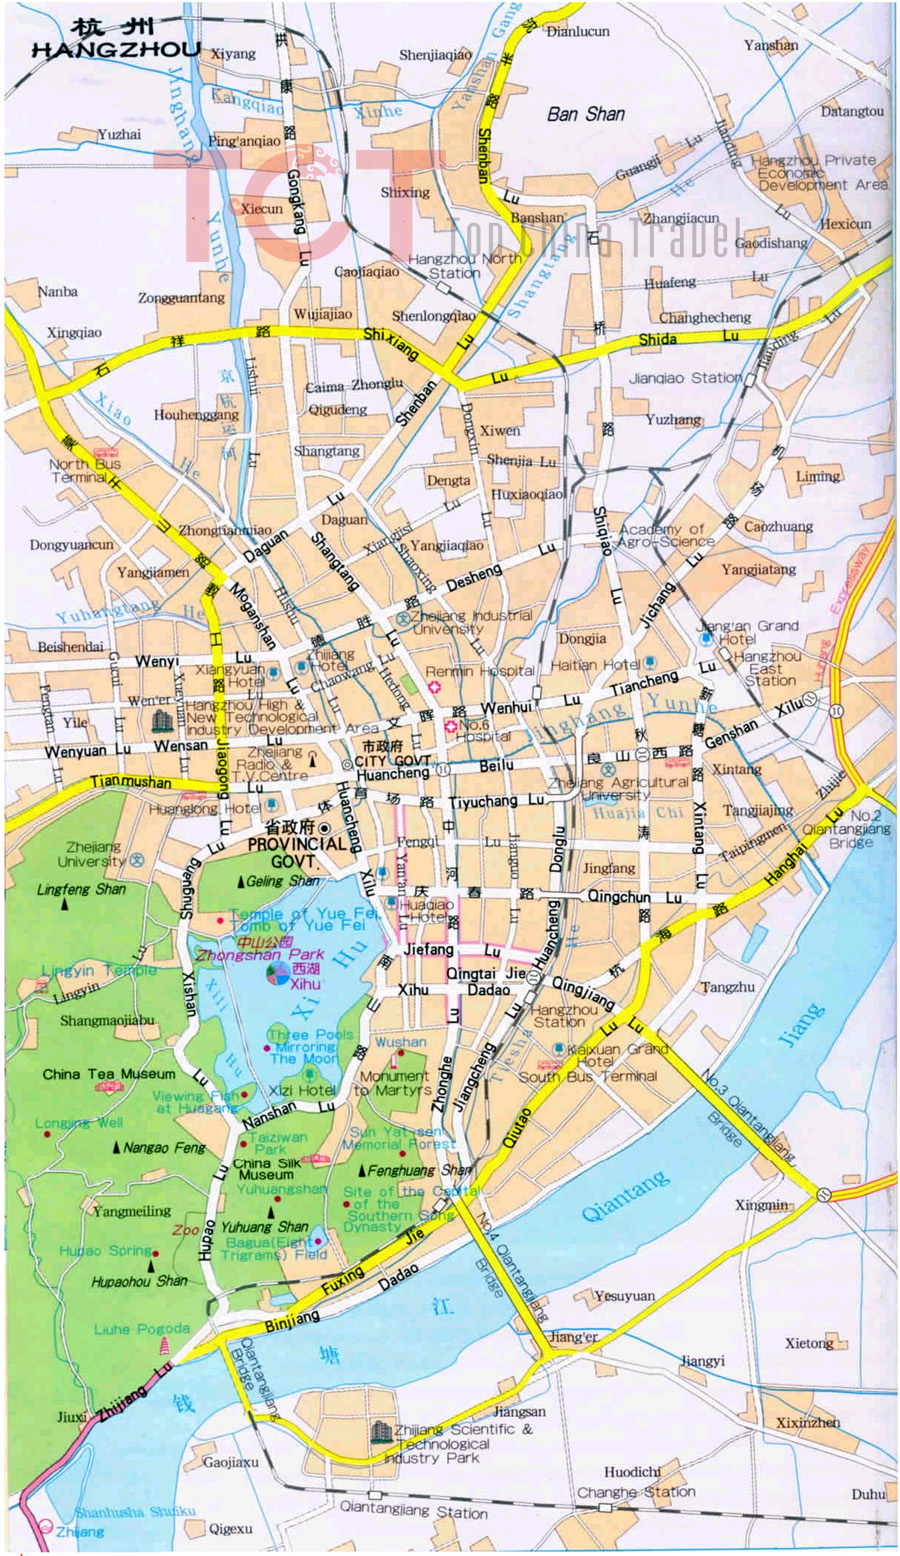 Hangzhou China  city images : Hangzhou City Map, Hangzhou Street Map, Map of Hangzhou China